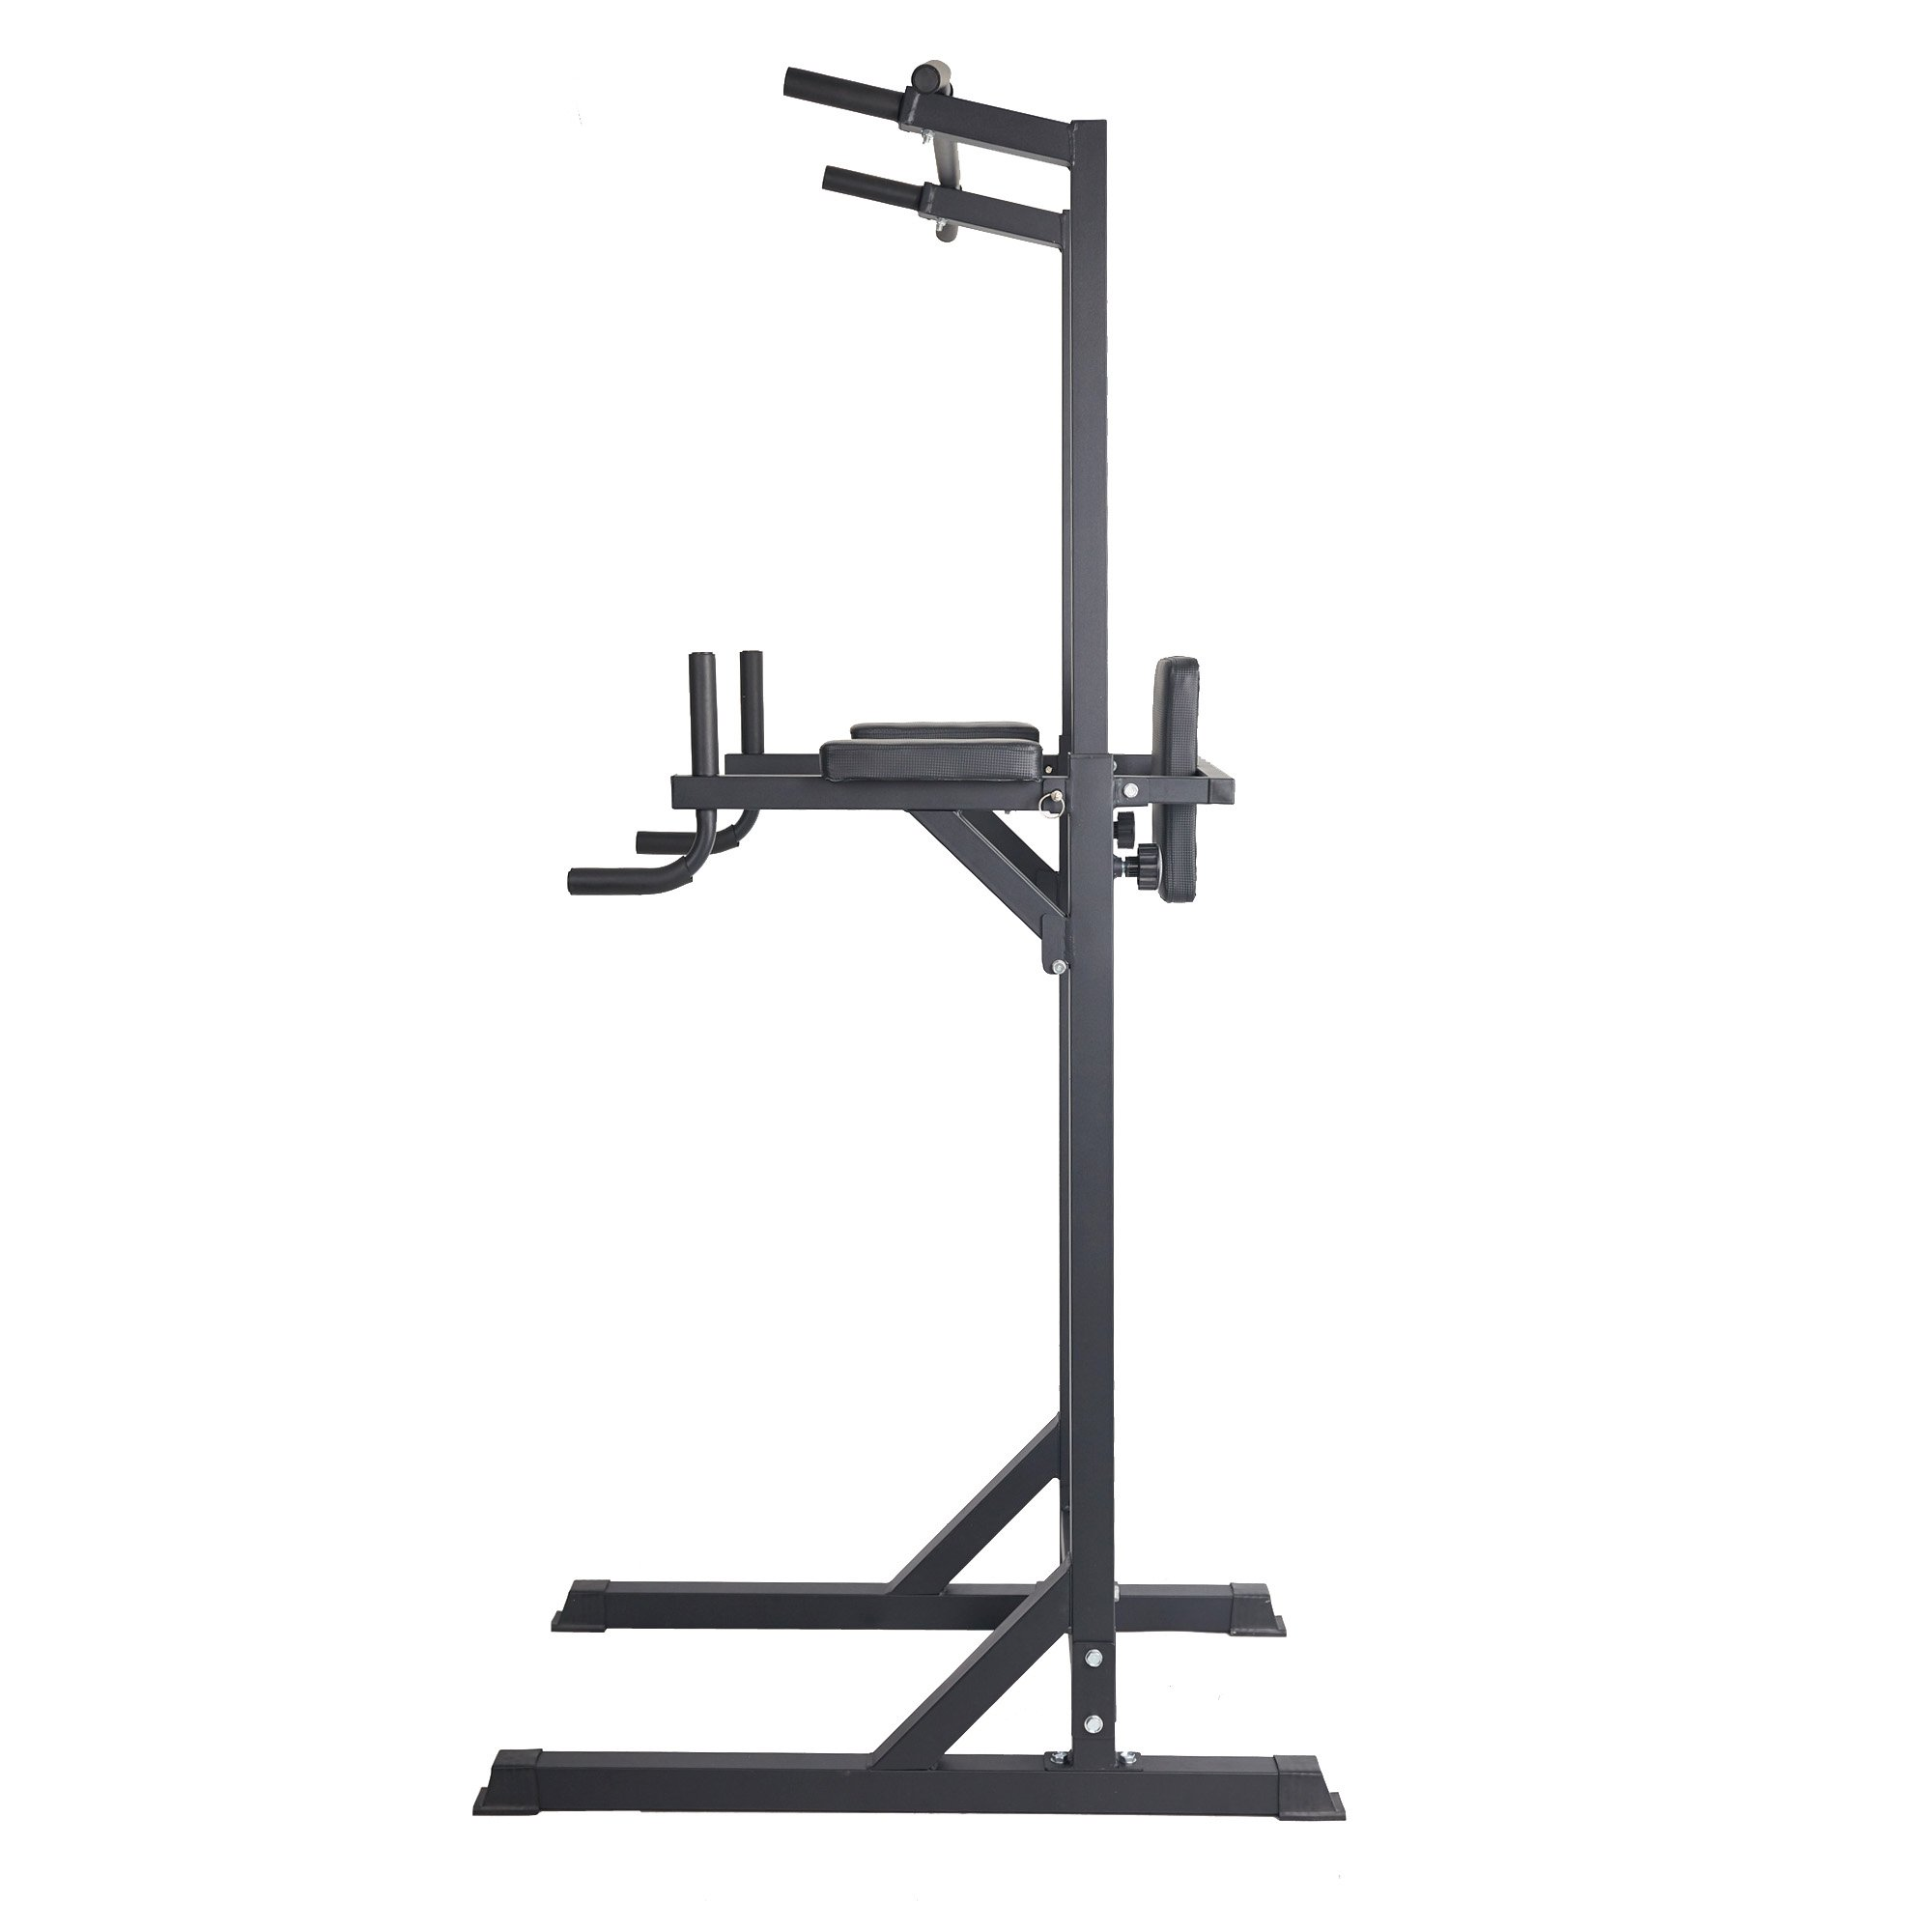 Livebest Heavy Duty Fitness Power Tower Multi-Function Strength Training Workout Dip Station Work Out Equipment for Home Gym by Livebest (Image #9)